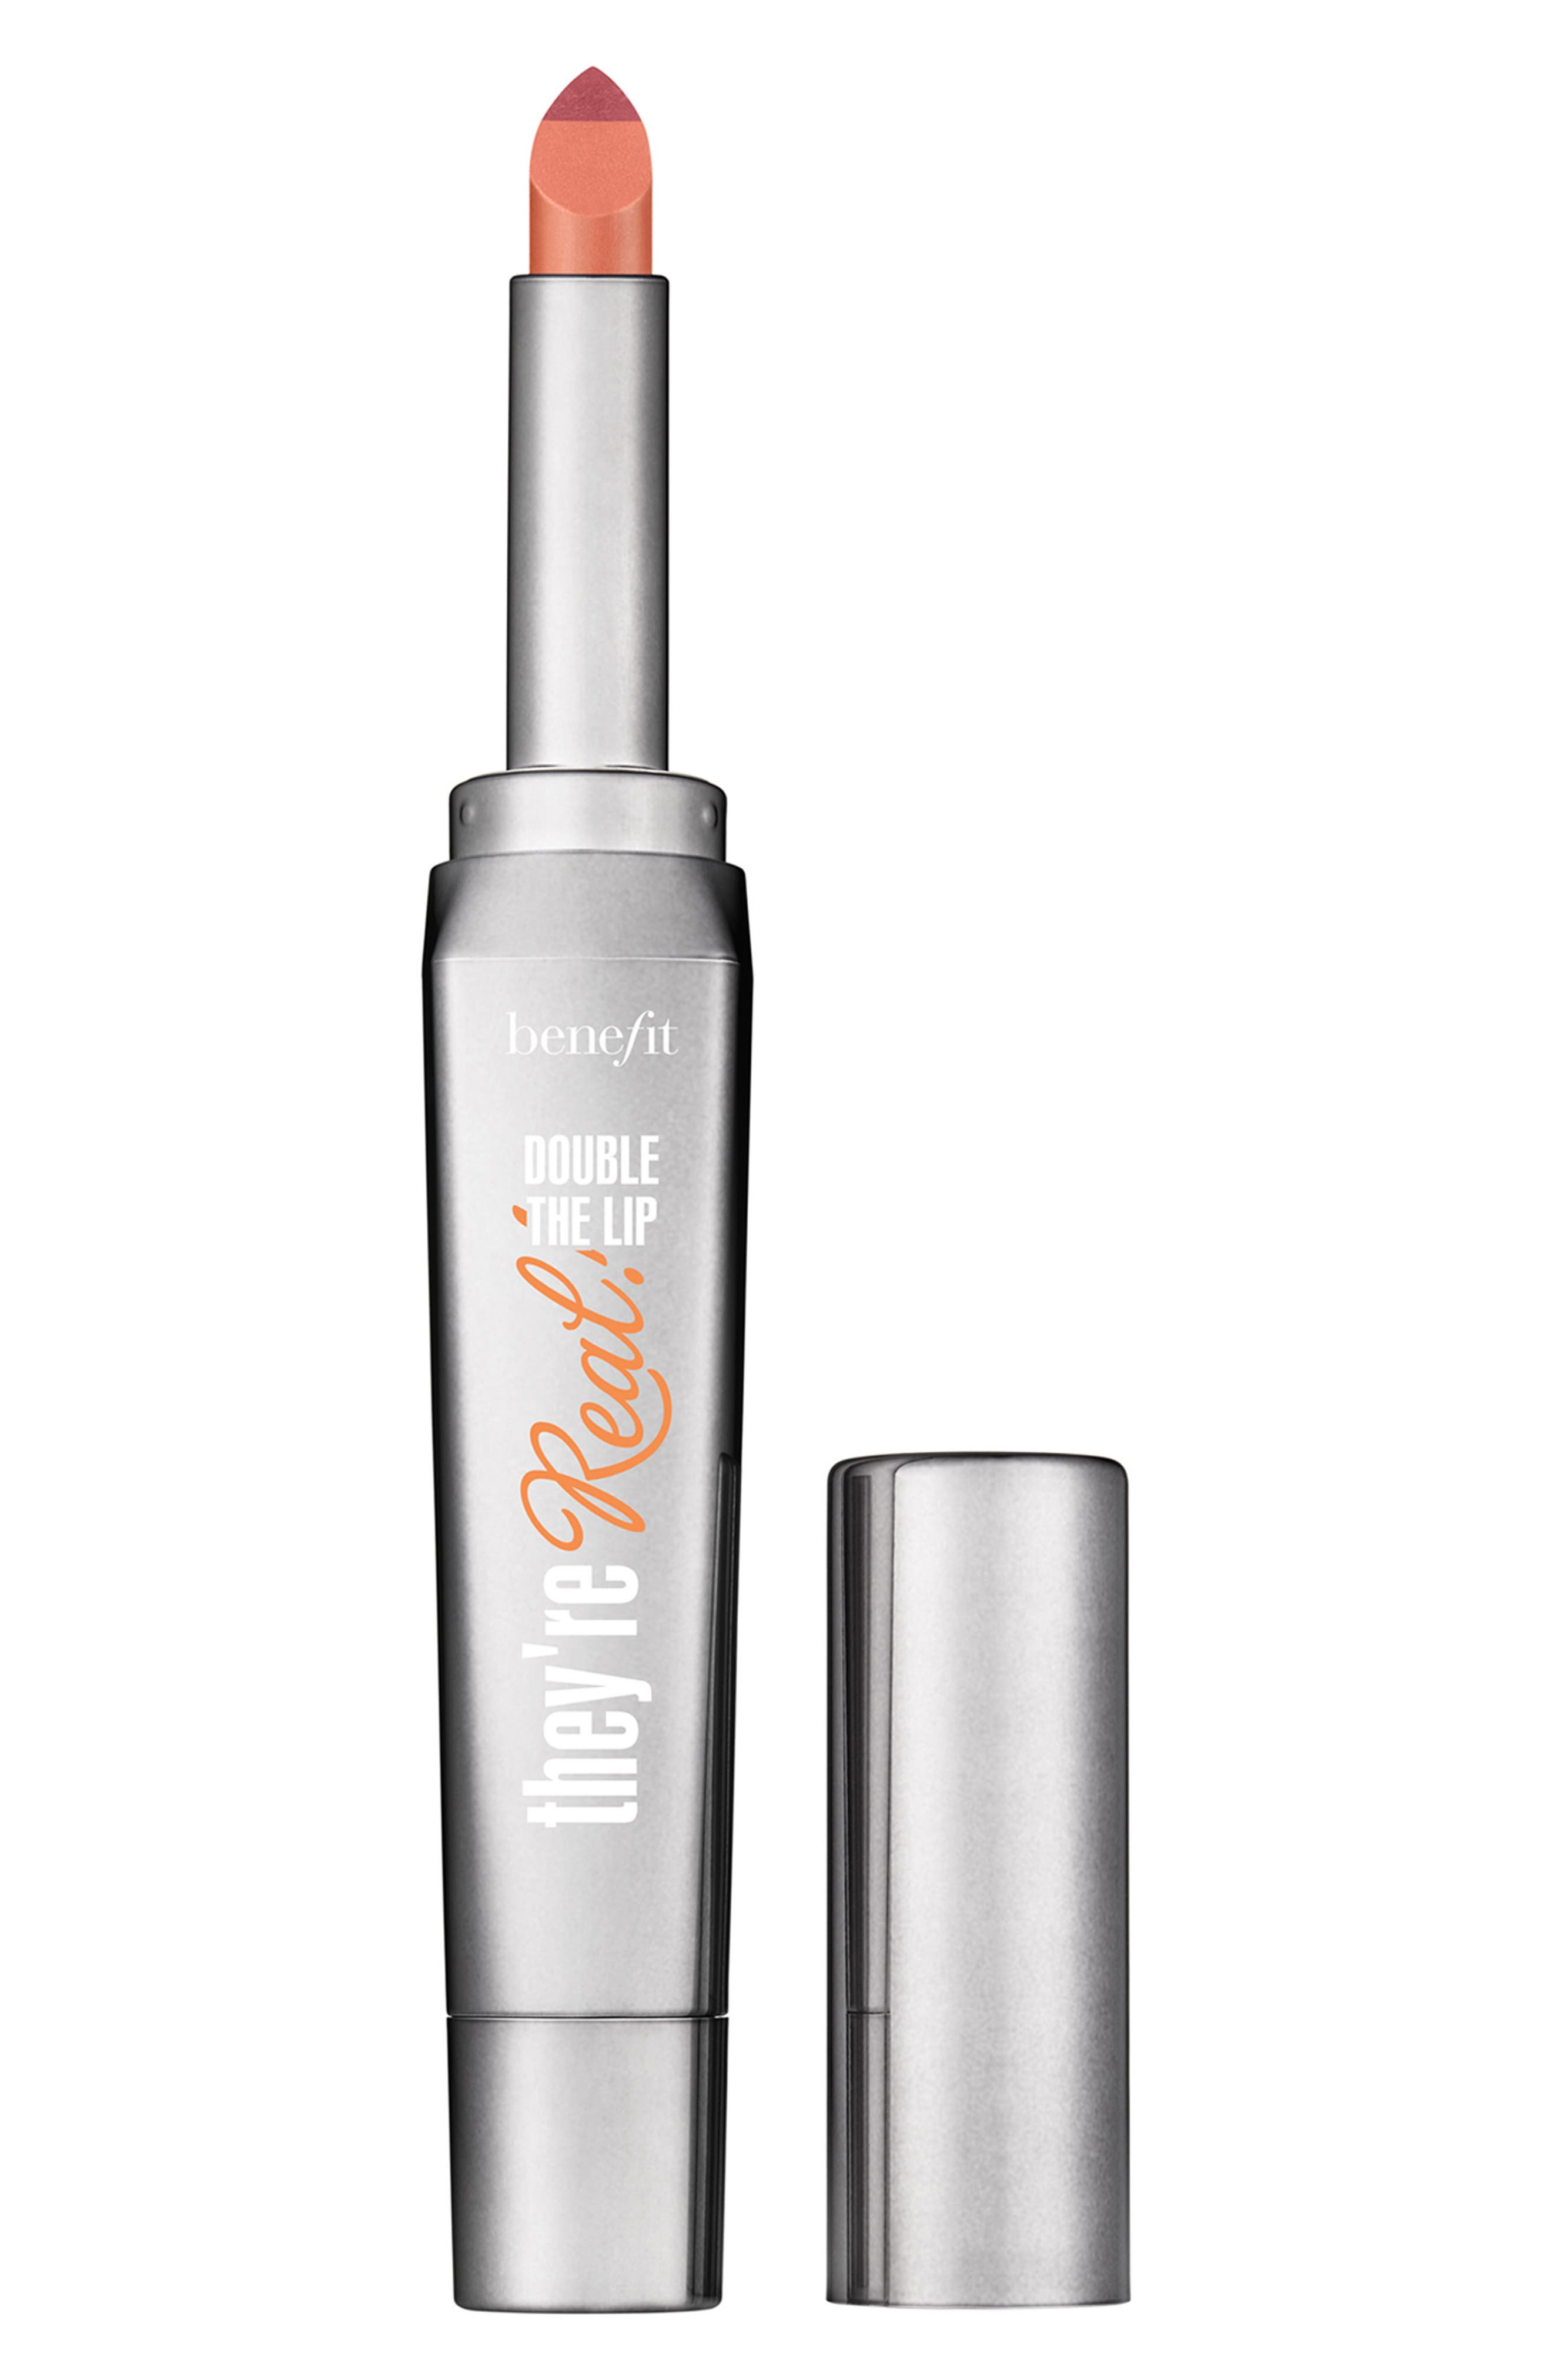 Benefit They're Real! Double the Lip Lipstick & Liner in One,                             Main thumbnail 1, color,                             BARE AFFAIR